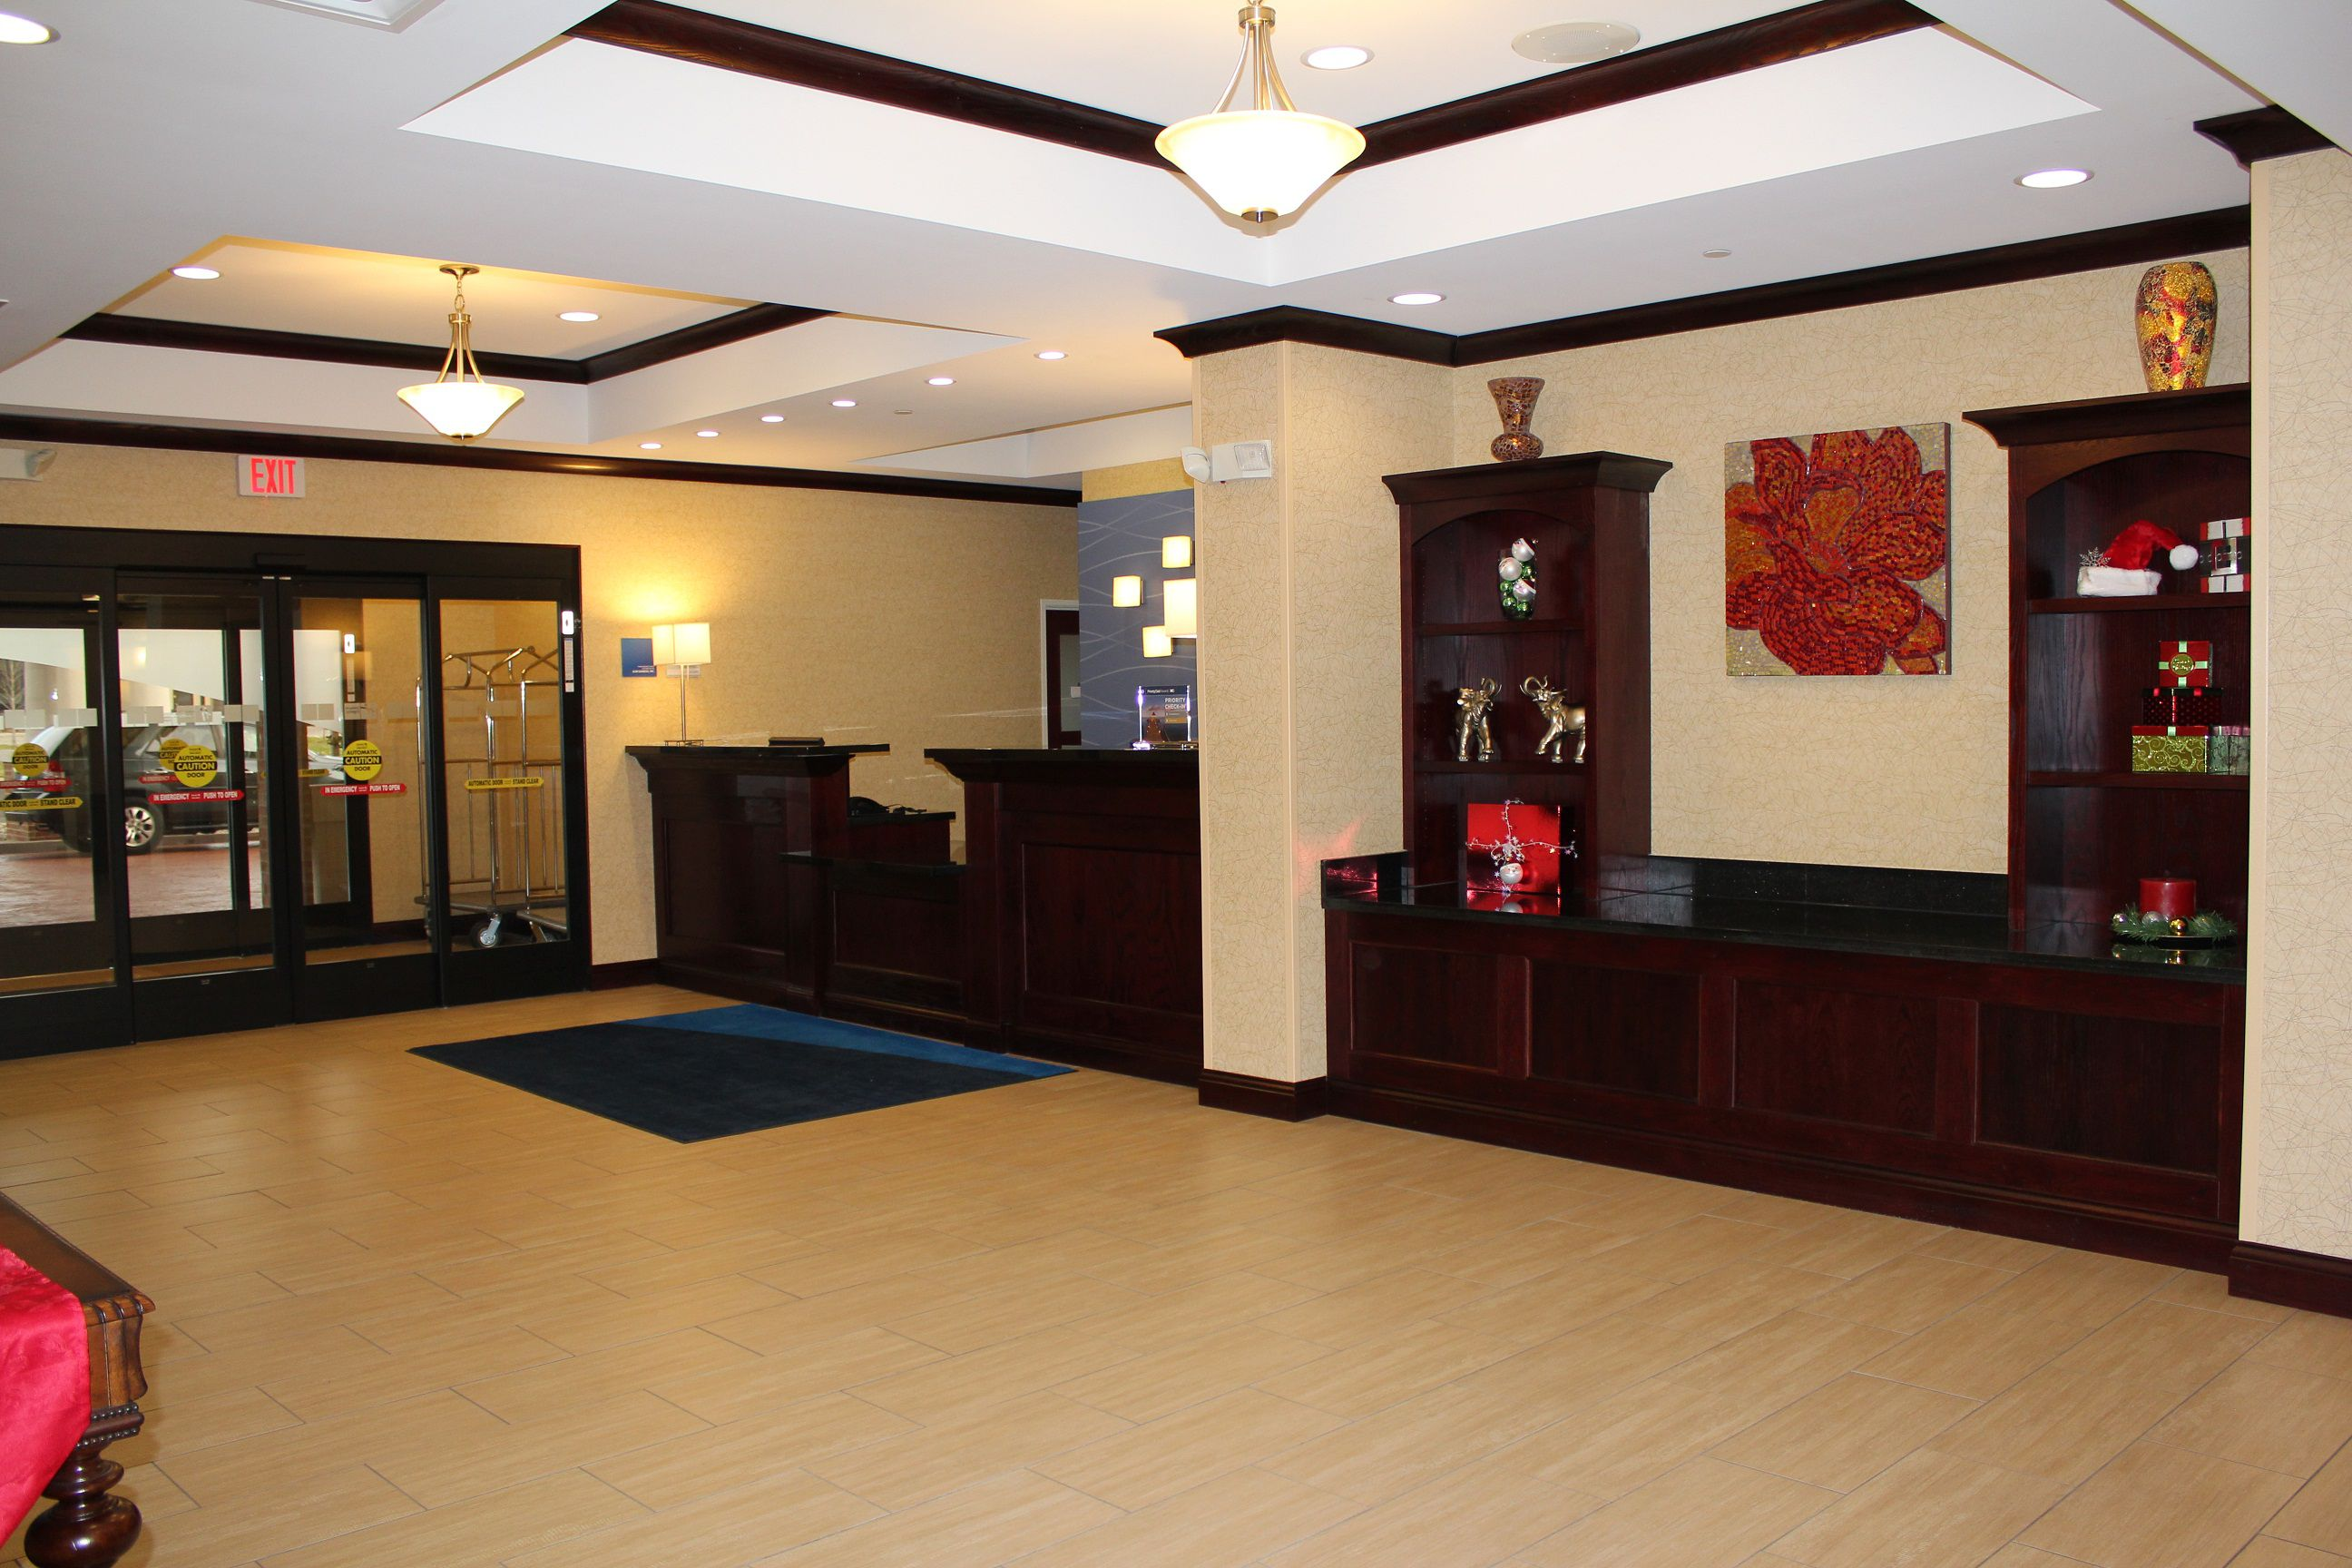 Holiday Inn Express & Suites Niles image 5